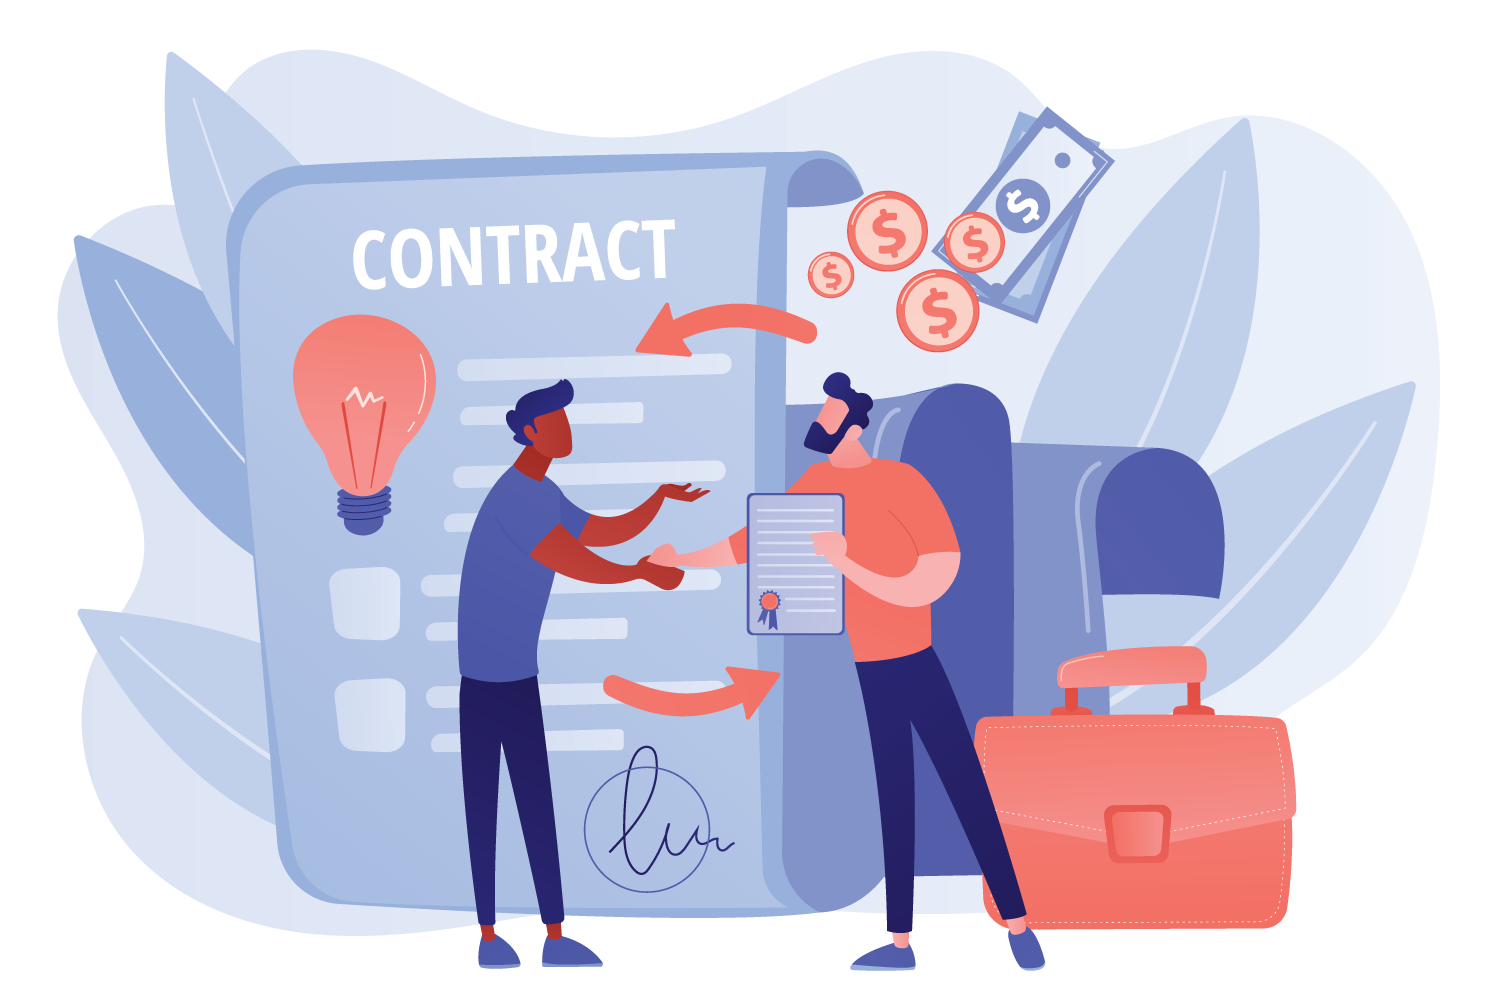 contract-banner-image